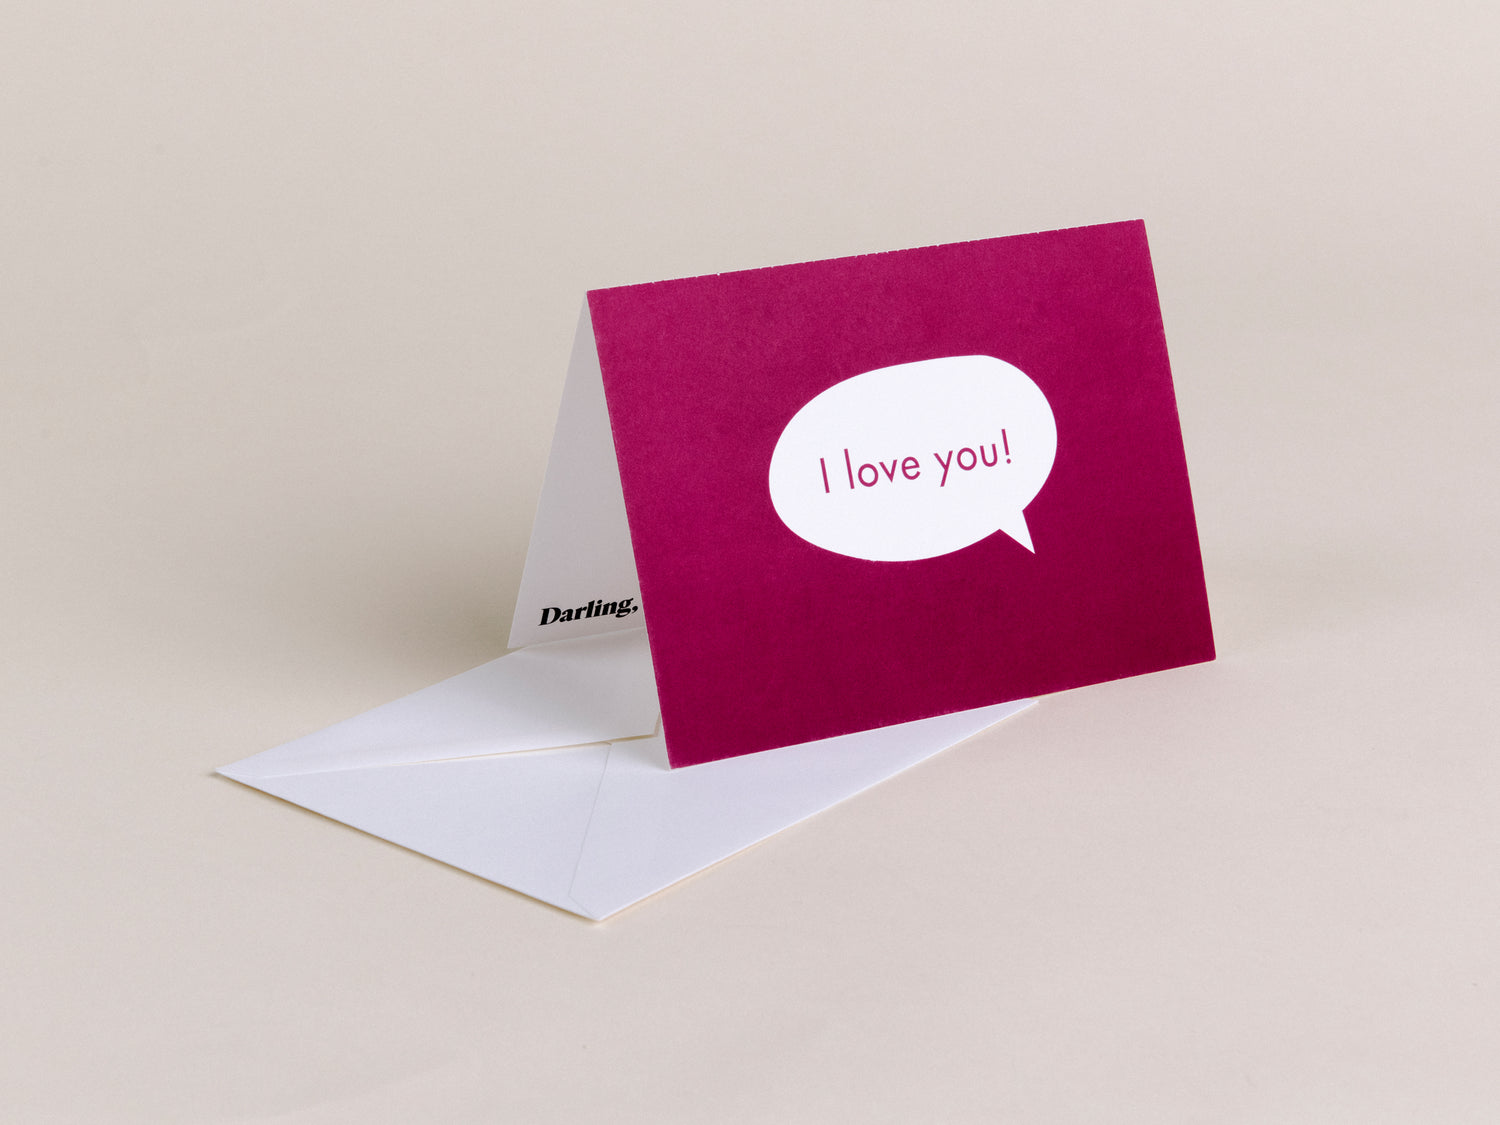 Darling Conversation Cards